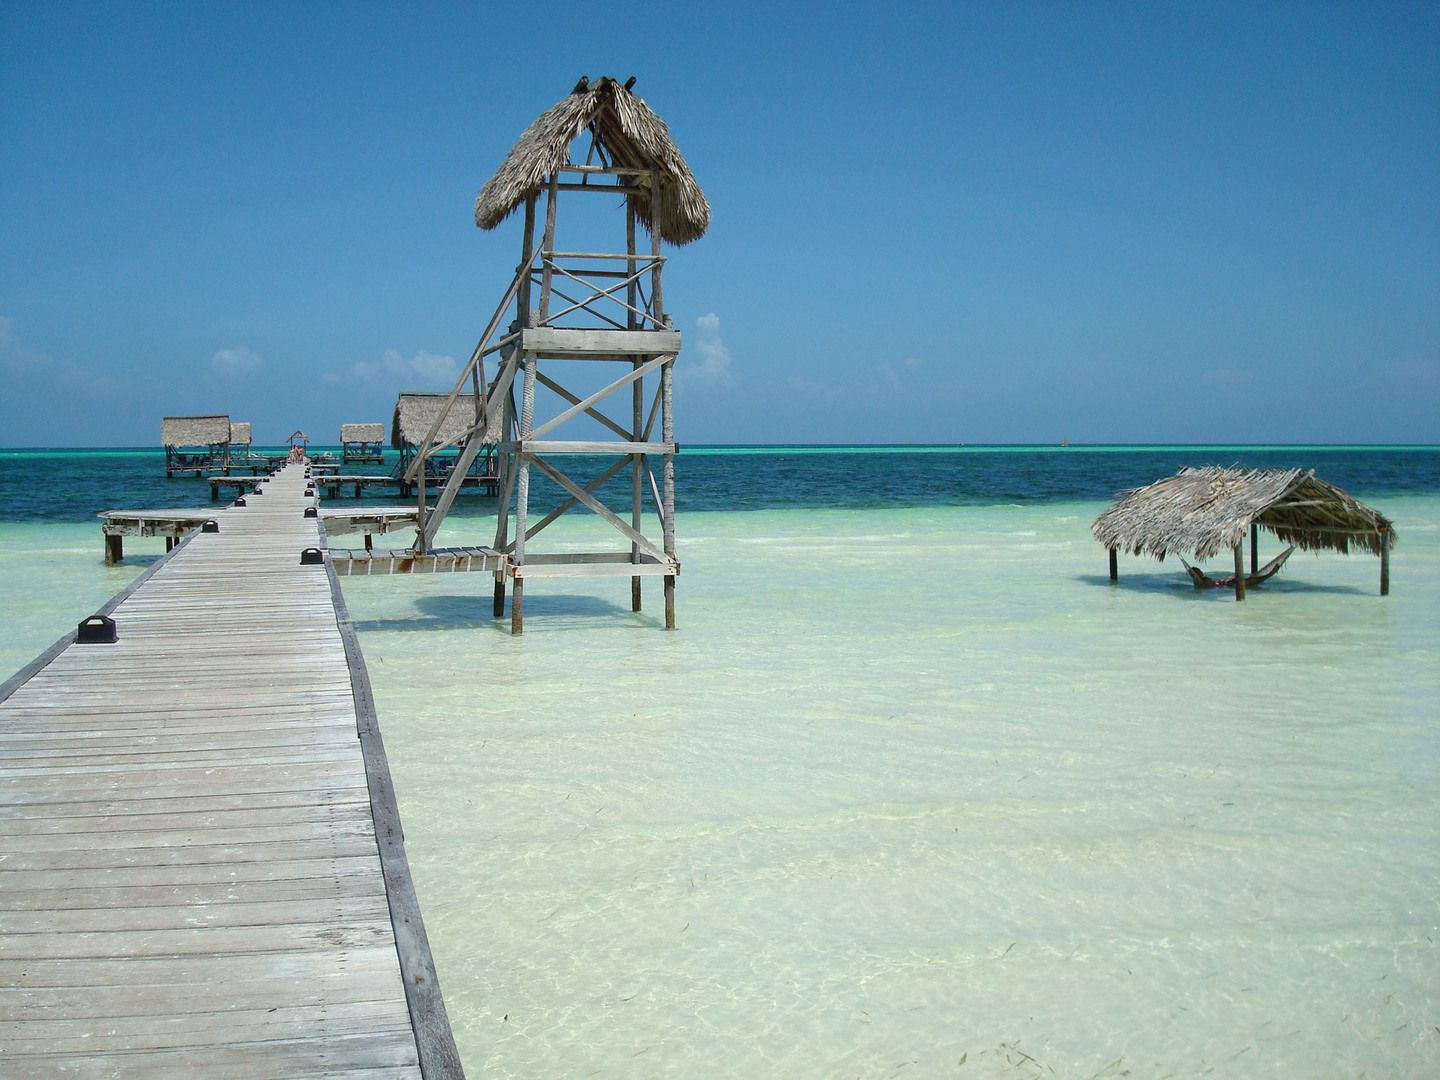 Cayo Guillermo Cuba One Of The Best Beaches In World Also Home To Some Reefs 20 Takes Off Airbnb Airbnbcoupon